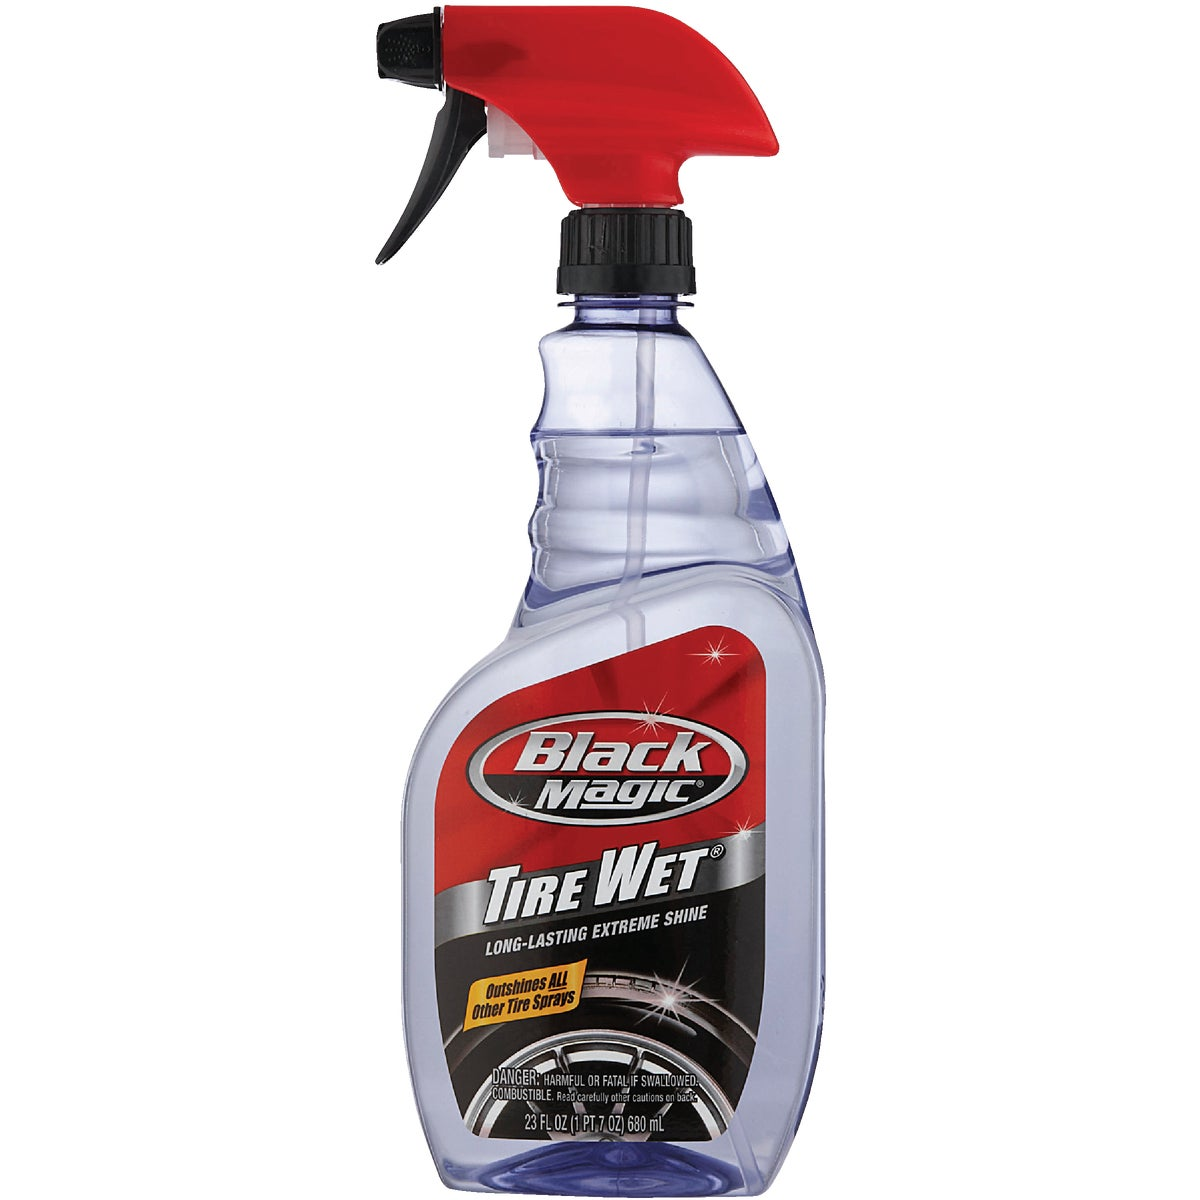 23OZ SPRAY TIRE SHINE - BM23 by Itw Global Brands